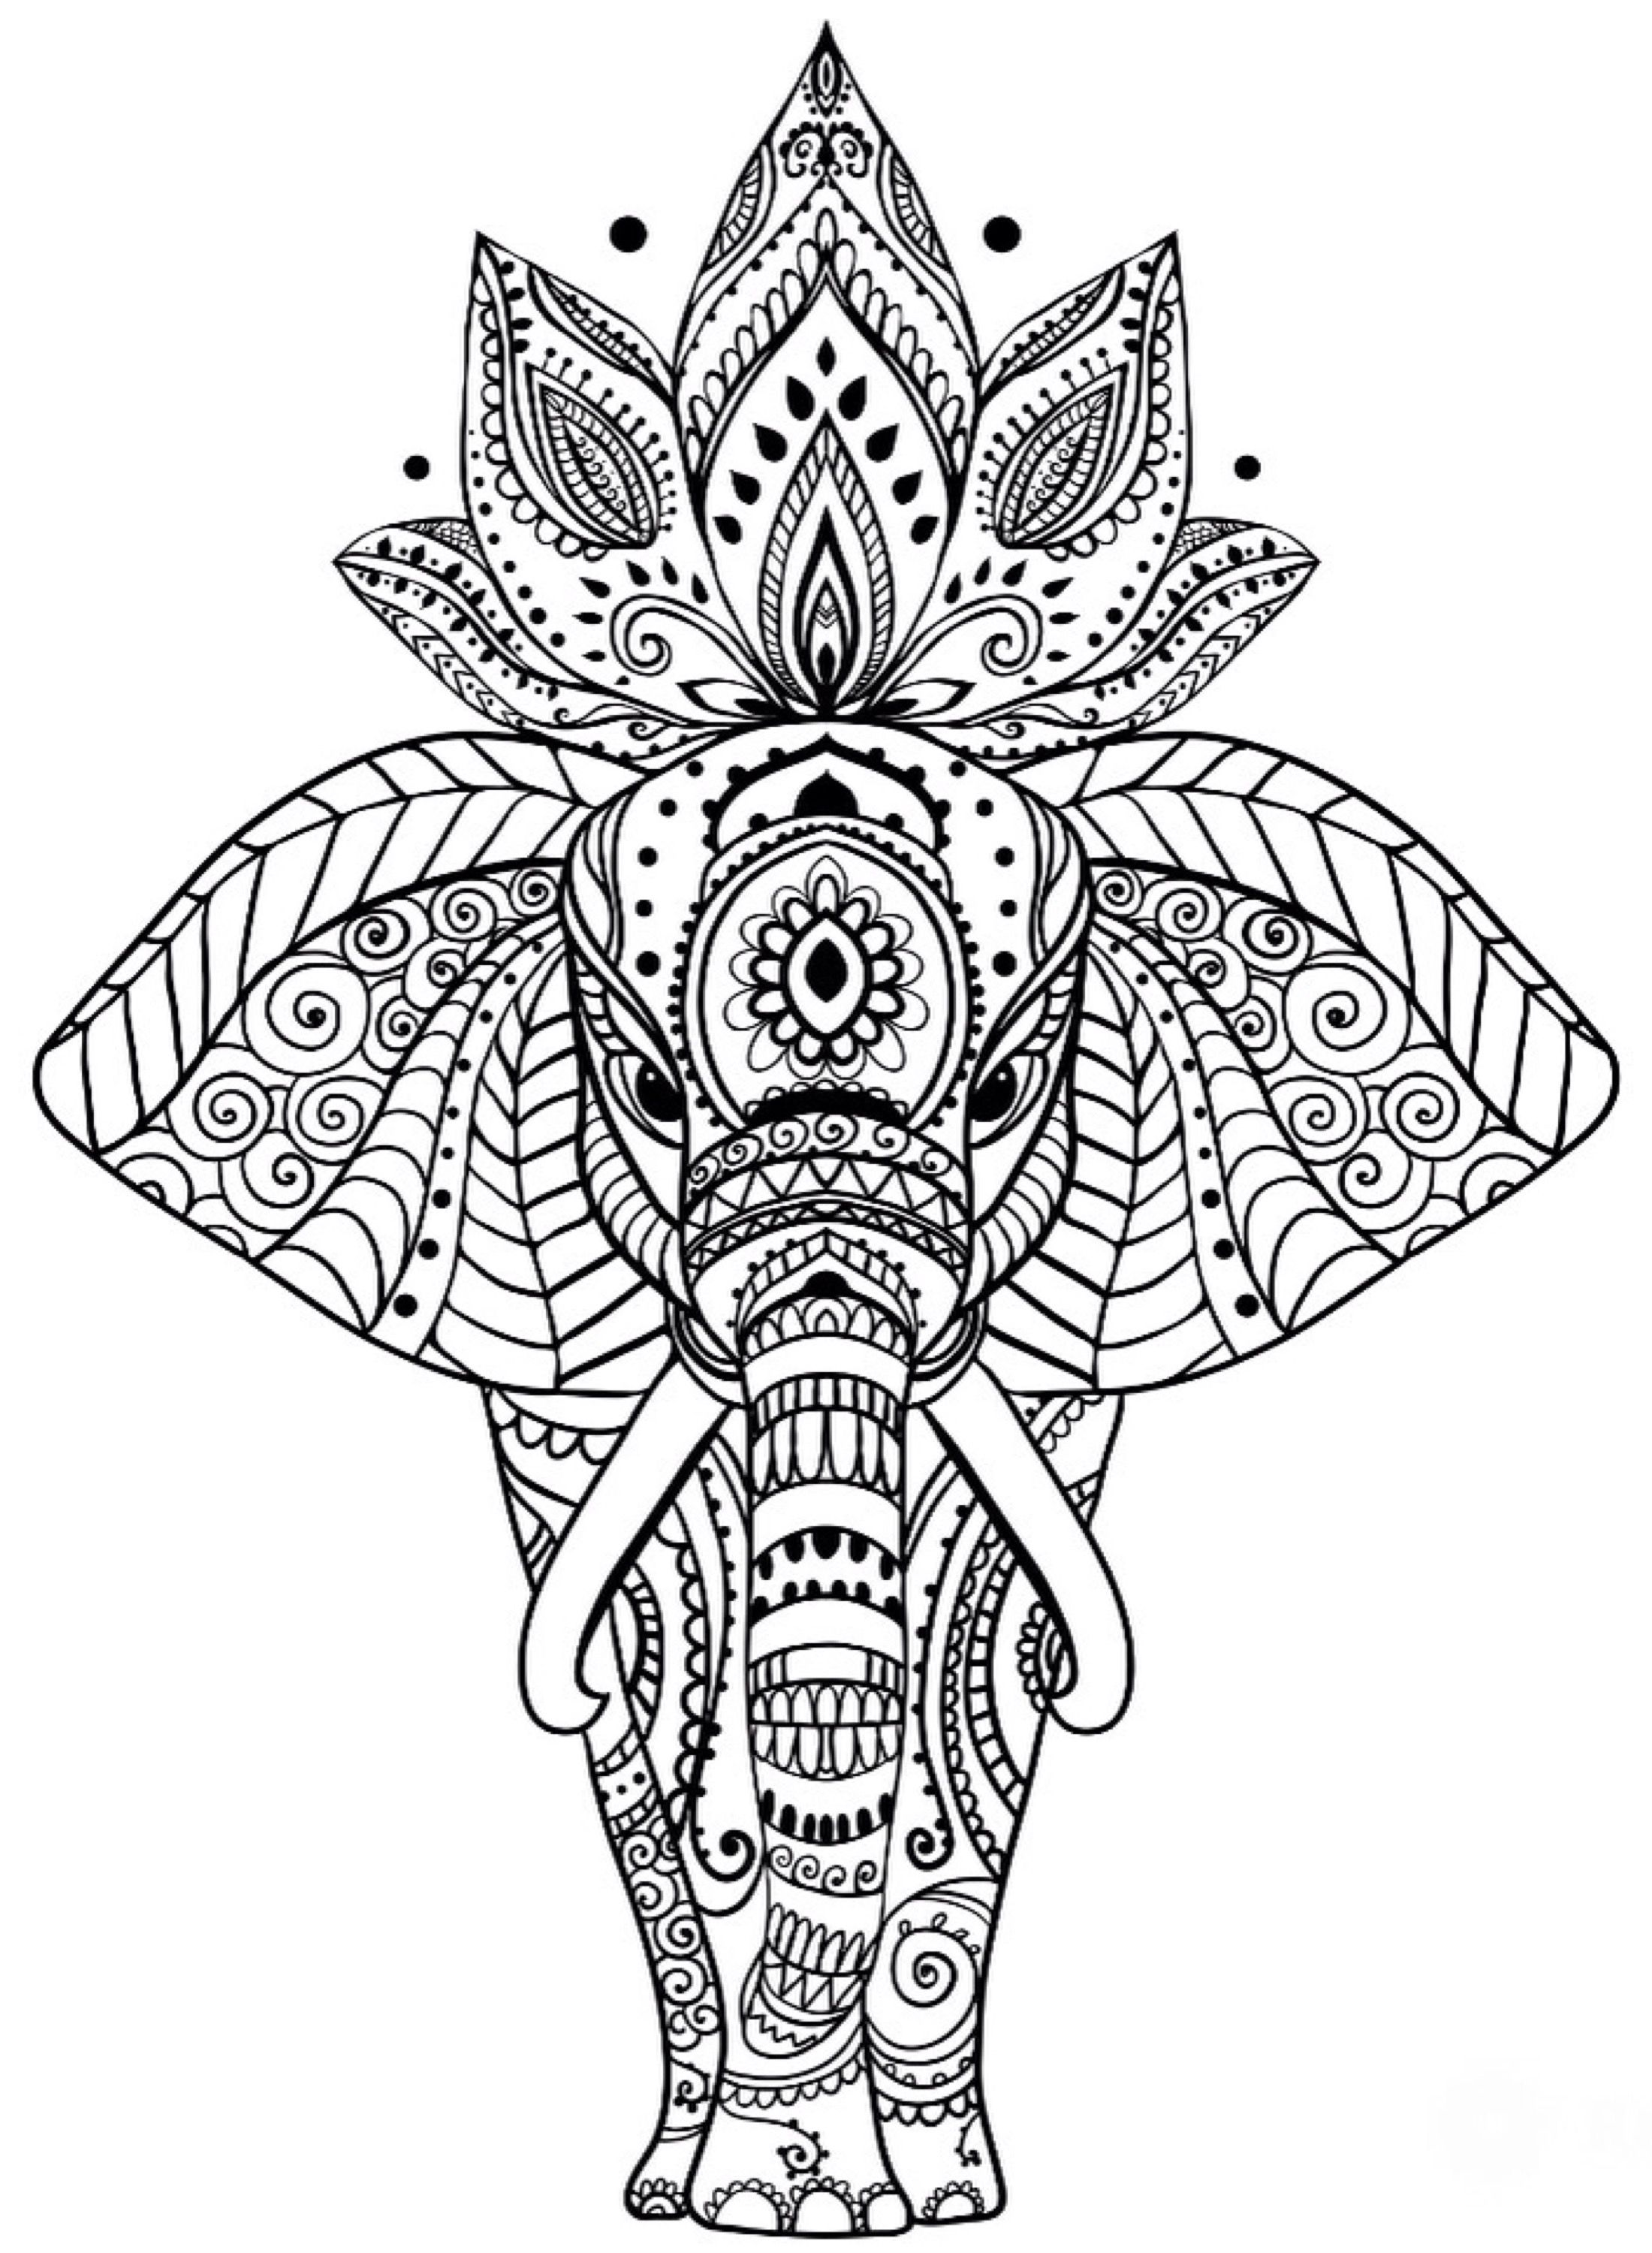 Best Adult Printable Elephant Difficult Hard Zen Coloring Pages ...   3000x2200